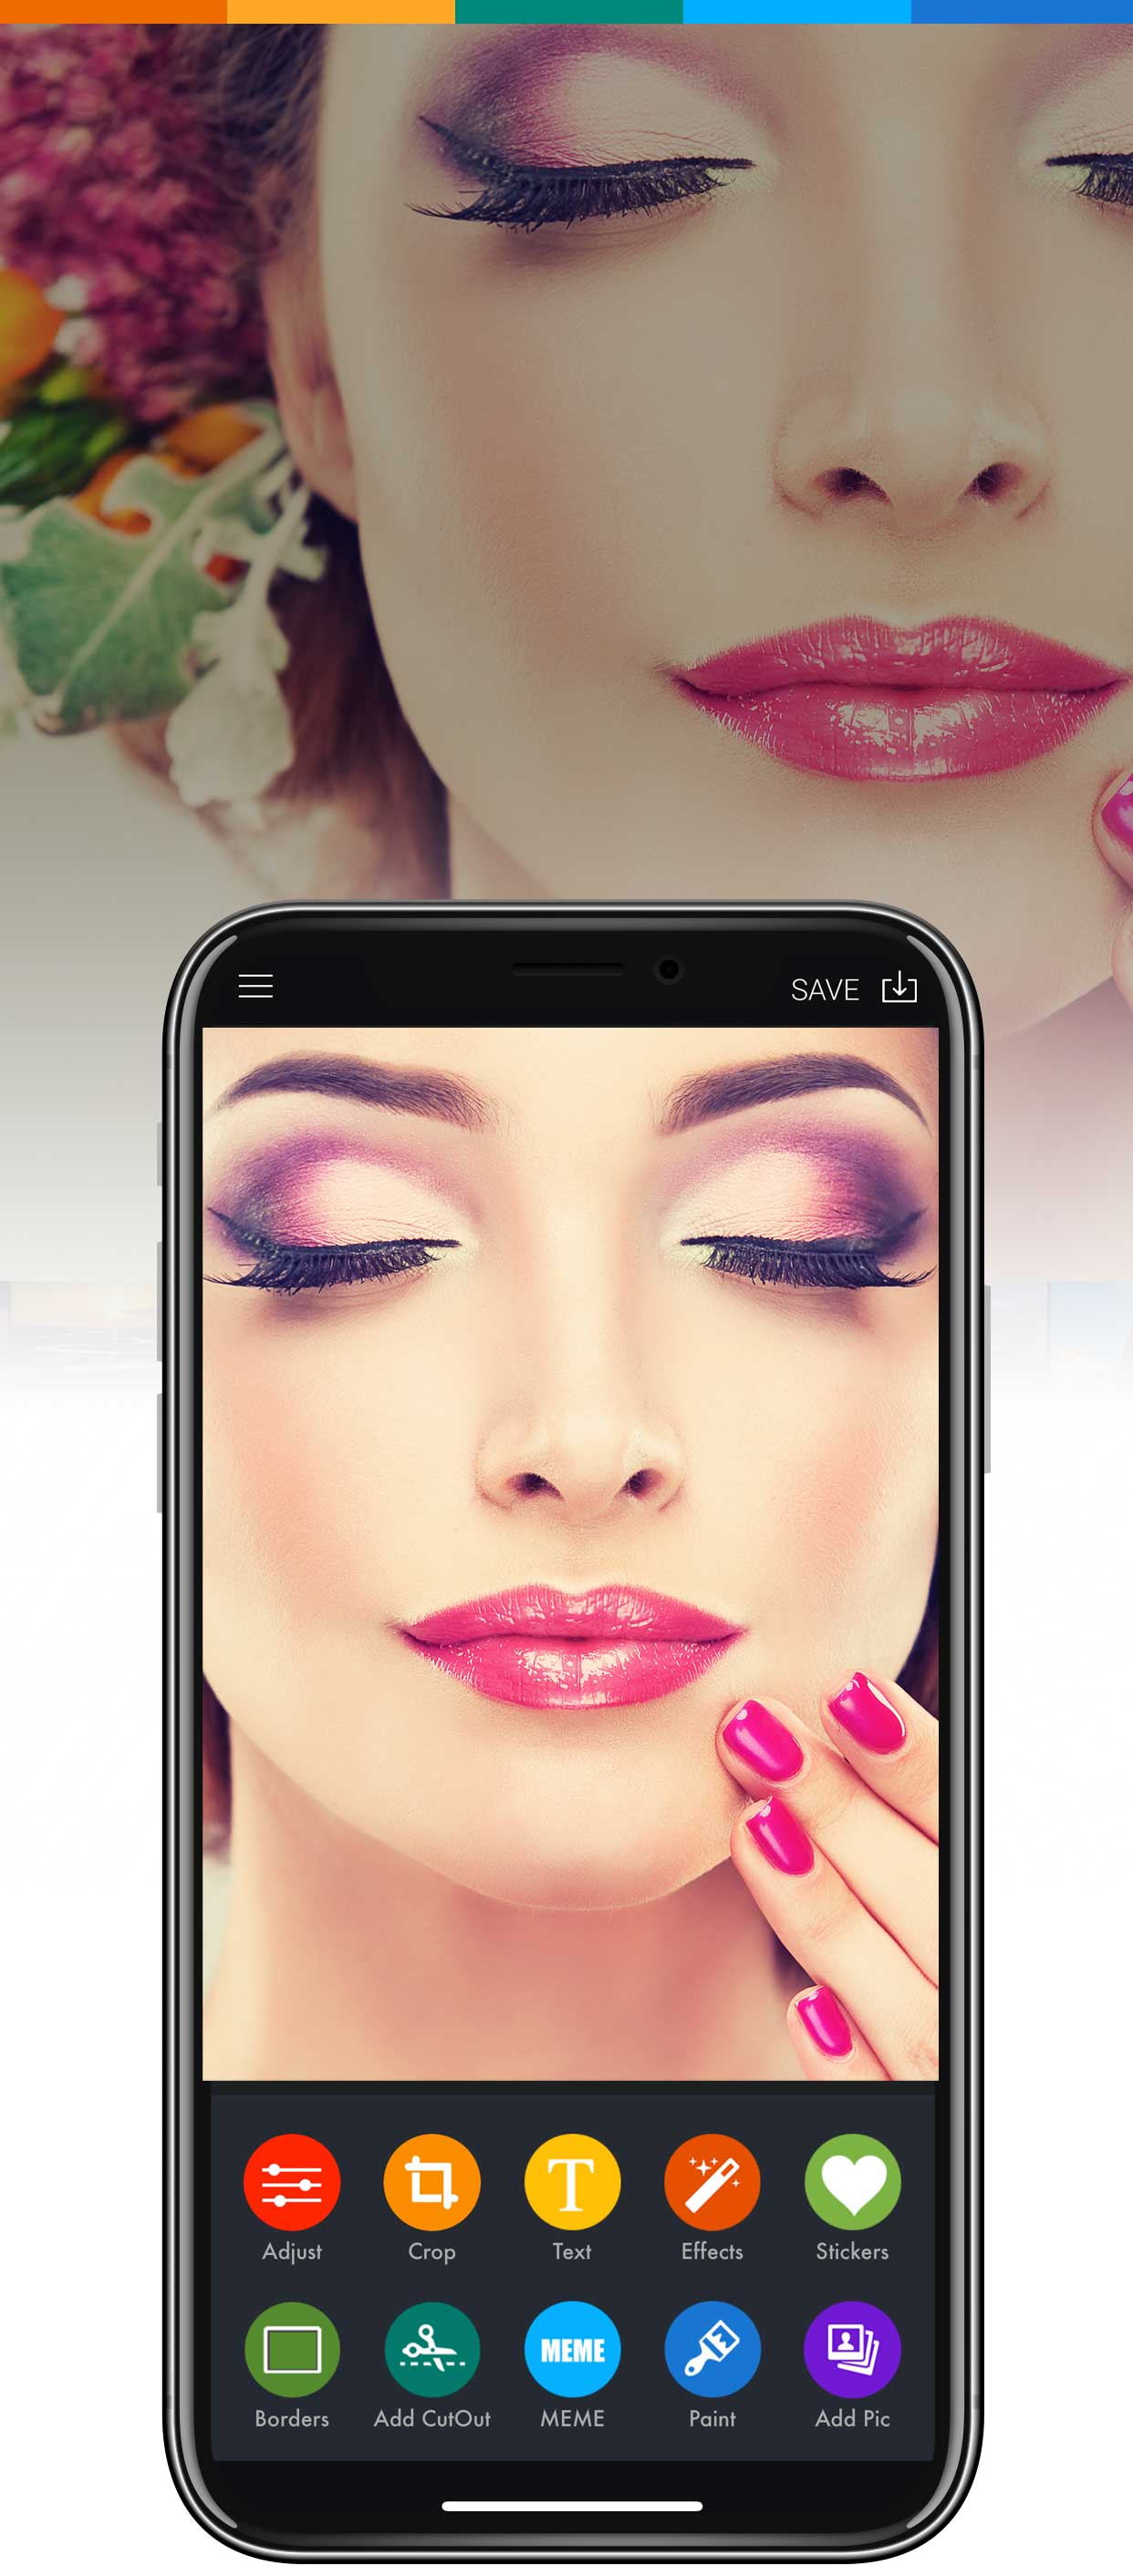 lip tint tool | change your lip color in photos